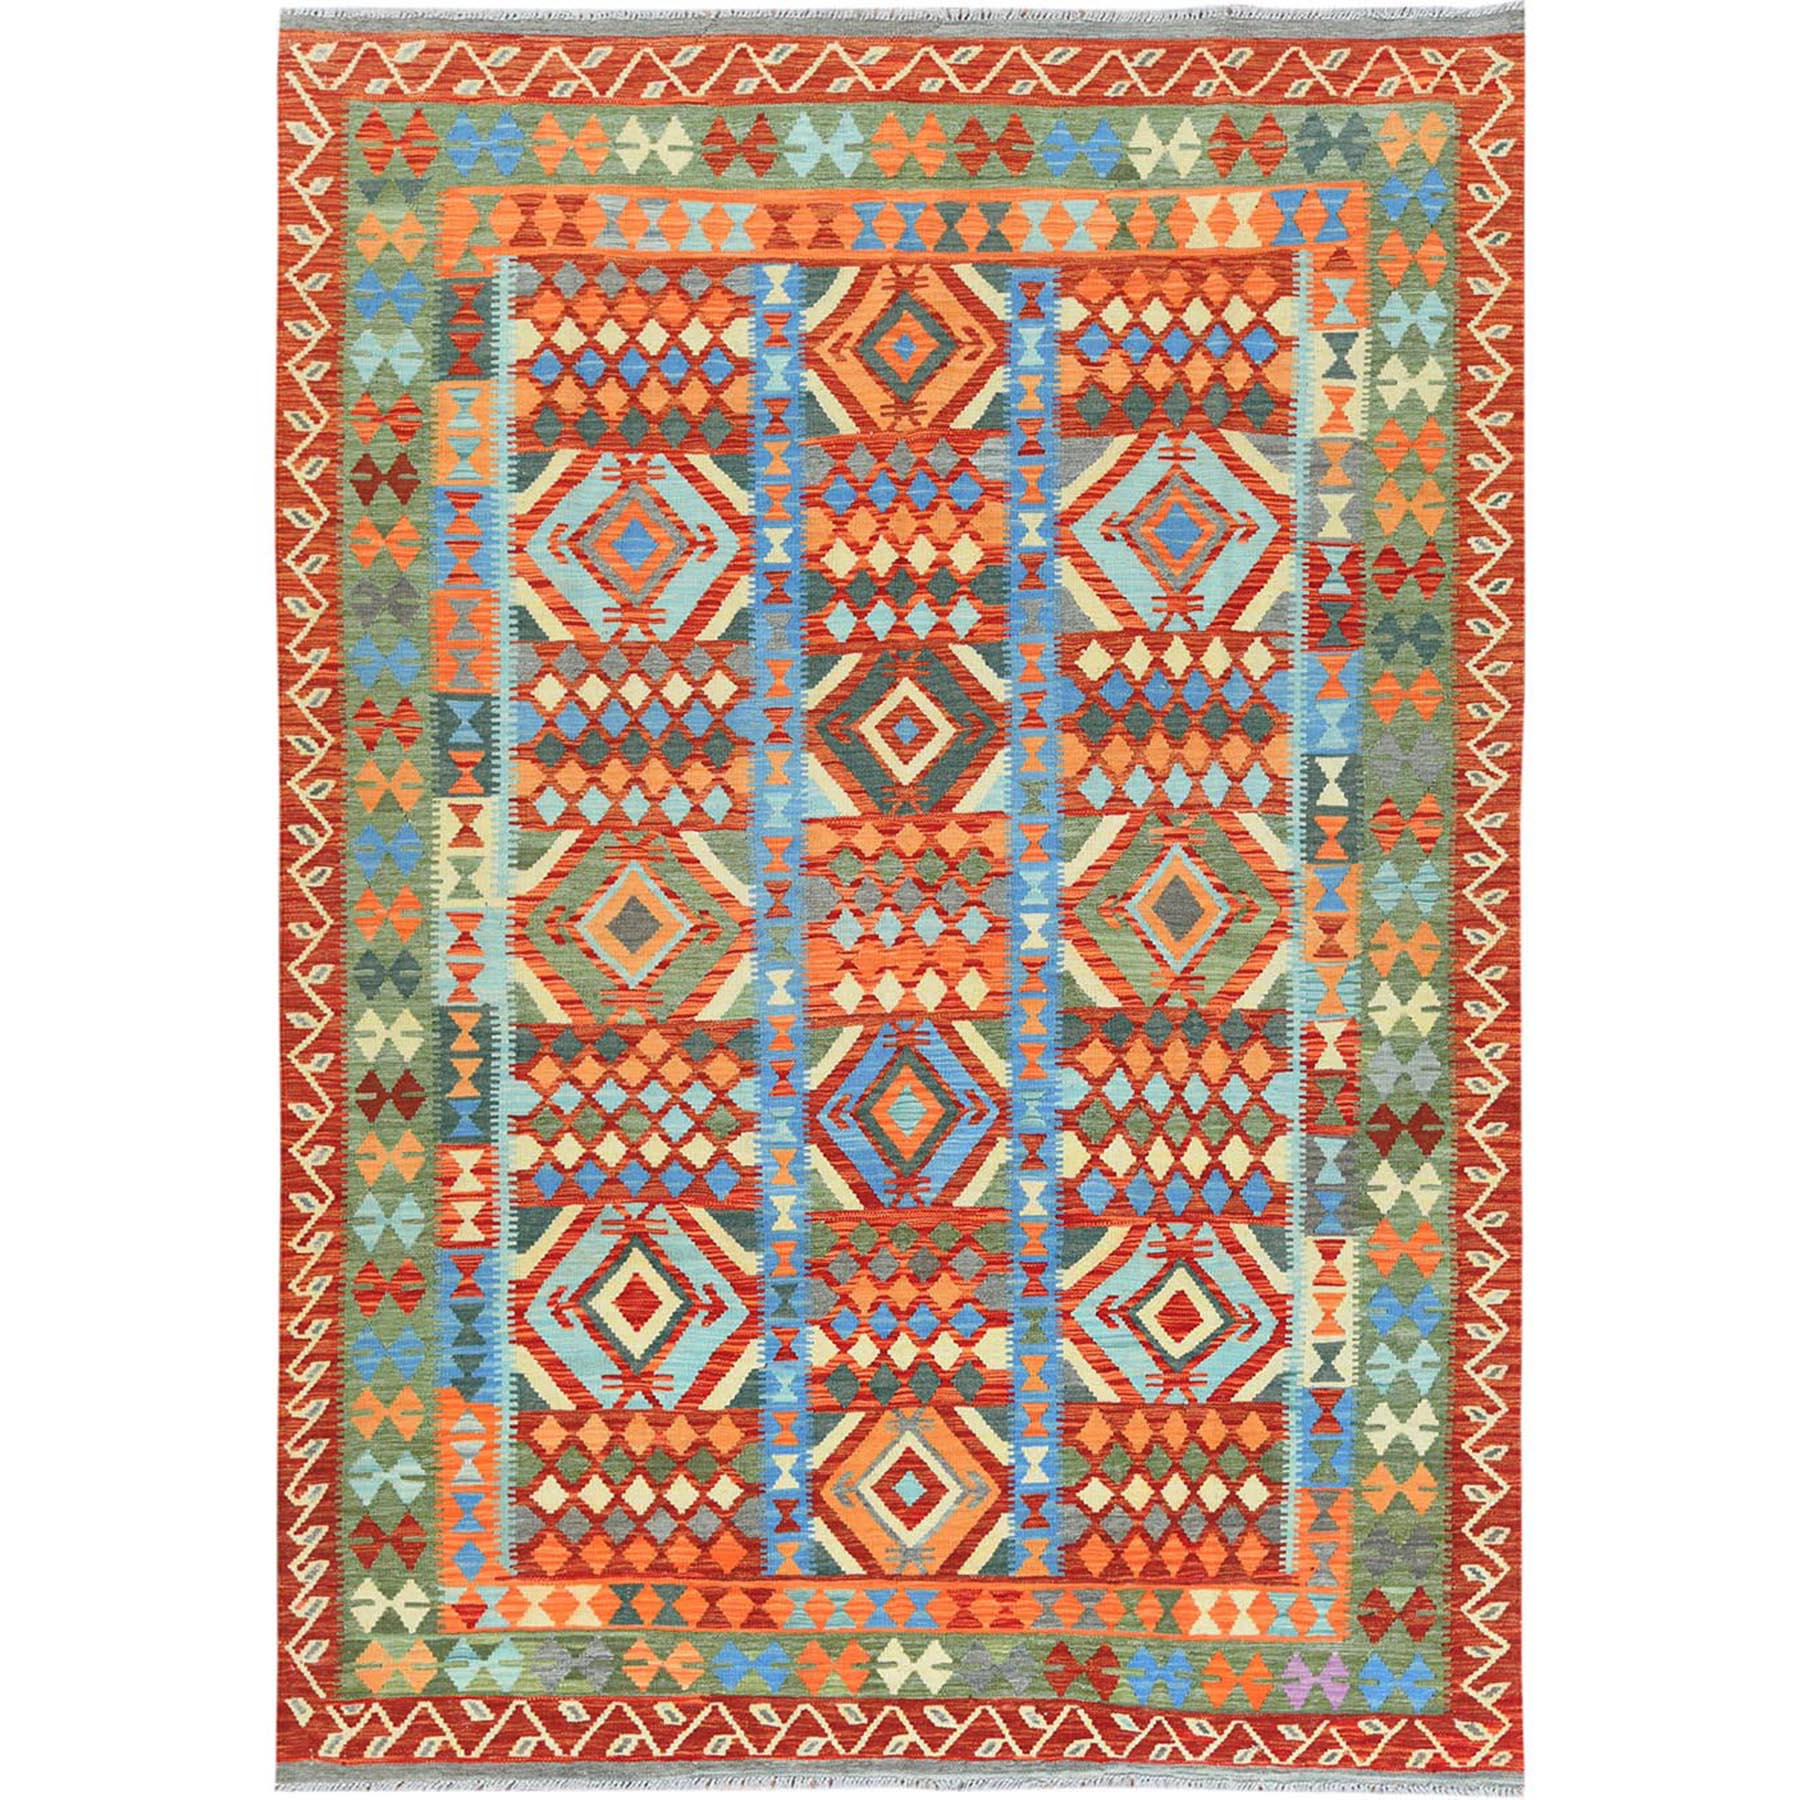 "6'7""x9'8"" Green Afghan Kilim In A Colorful Palette Geometric Design Reversible Pure Wool Hand Woven Oriental Rug"